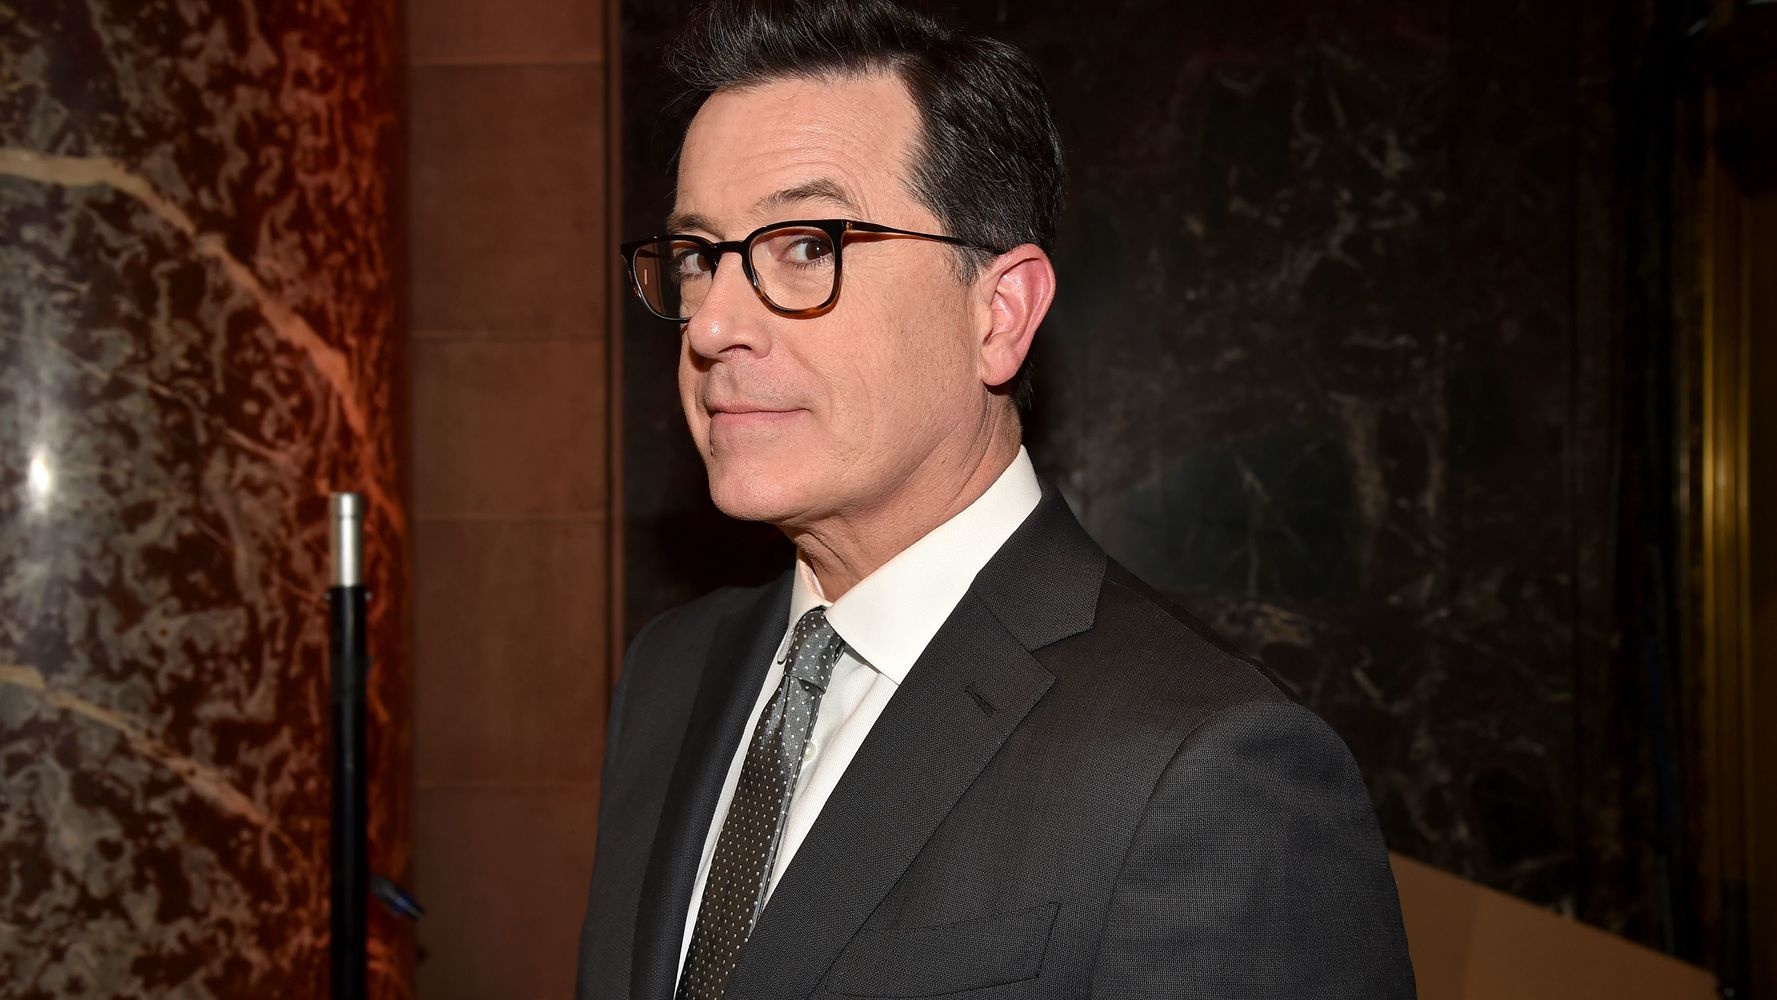 This Throwback Pic Of A Young Stephen Colbert Is Making The Internet Thirsty Huffpost Life